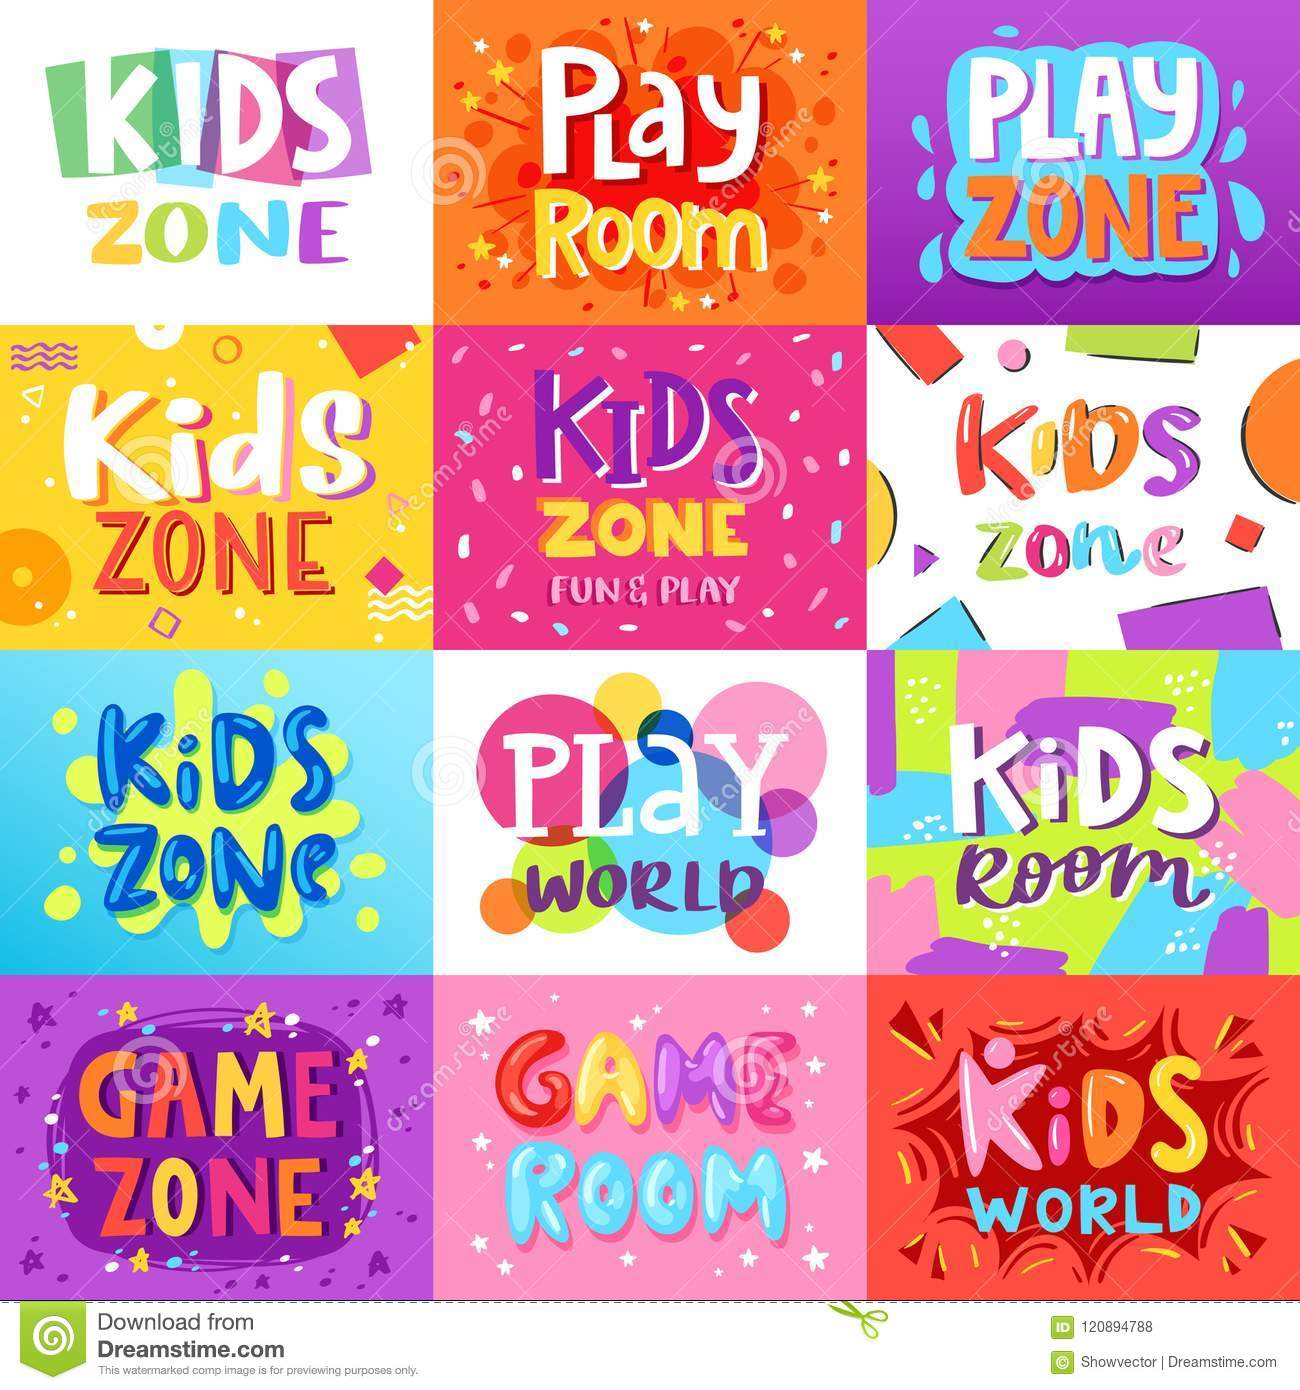 Kids Room Decoration Space Theme Vector Illustration: Game Room Vector Kids Playroom Banner In Cartoon Style For